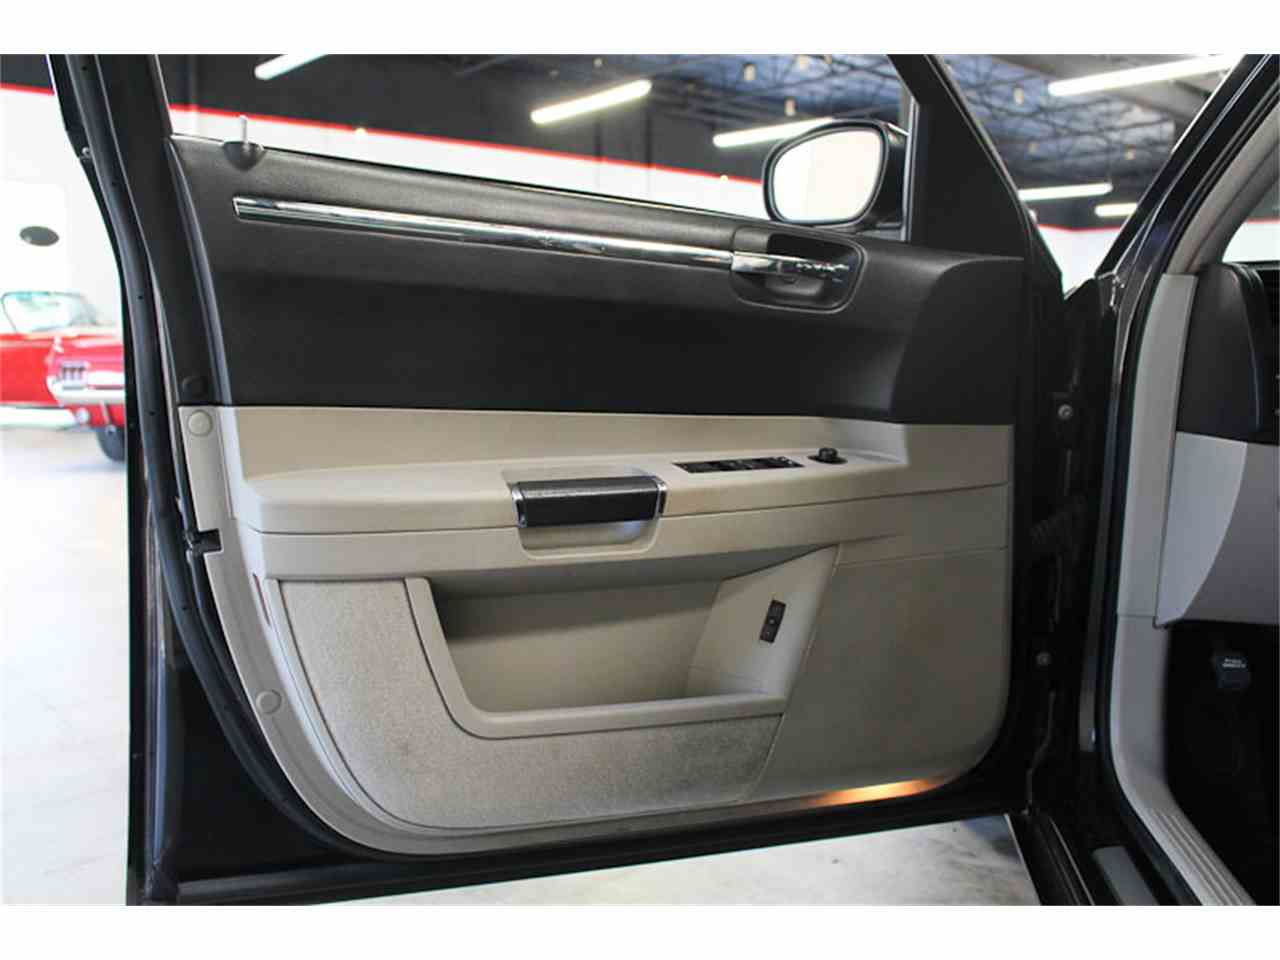 Large Picture of 2007 Chrysler 200 - $12,990.00 - LS4P